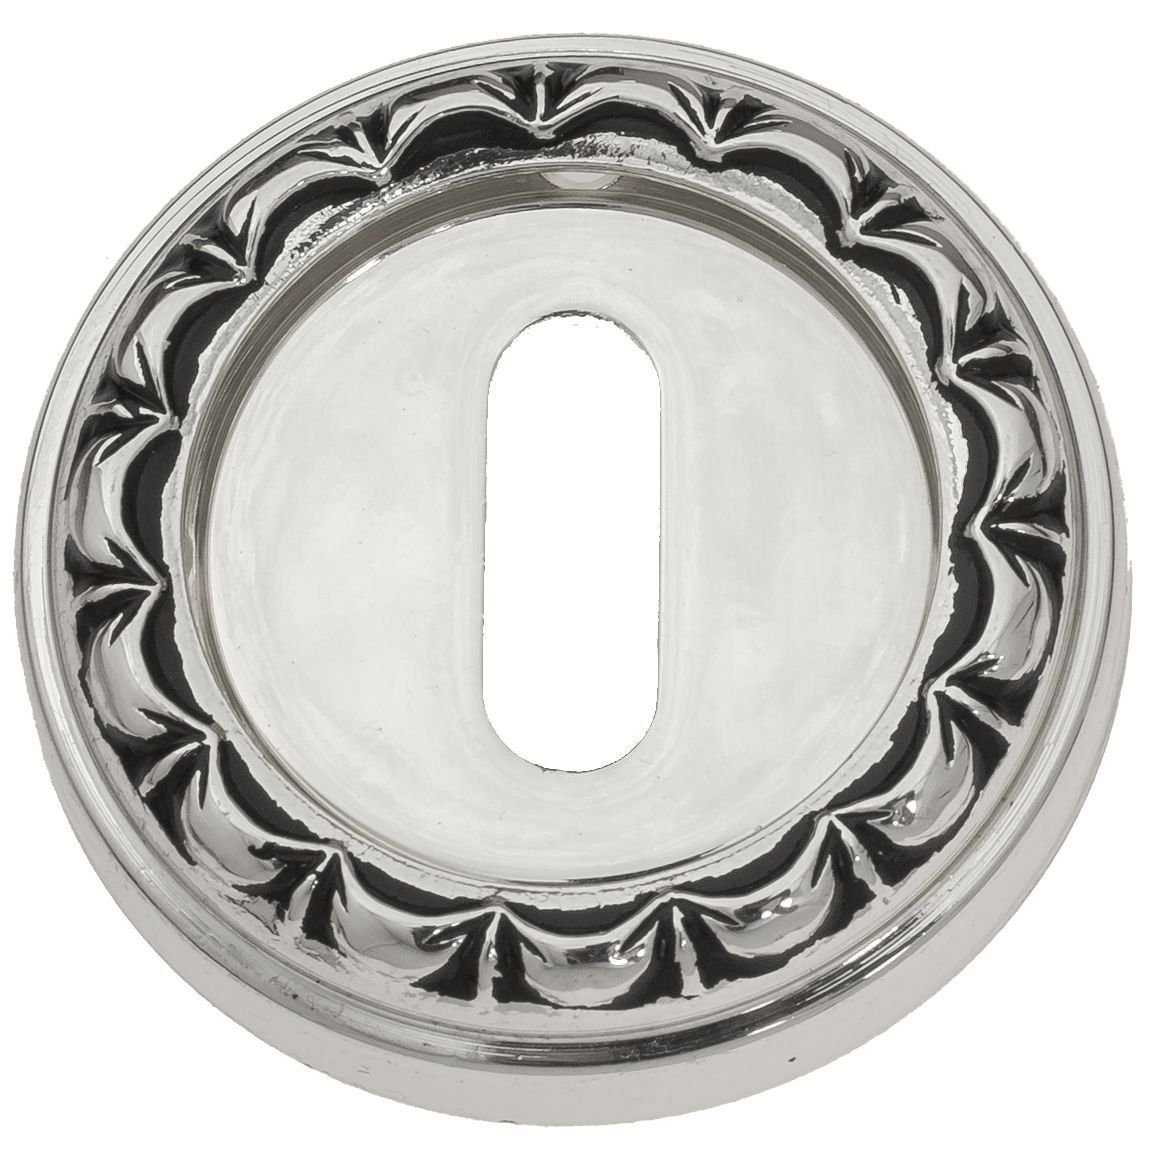 Keyhole Escutcheon Venezia KEY-1 D2 Natural Silver + Black